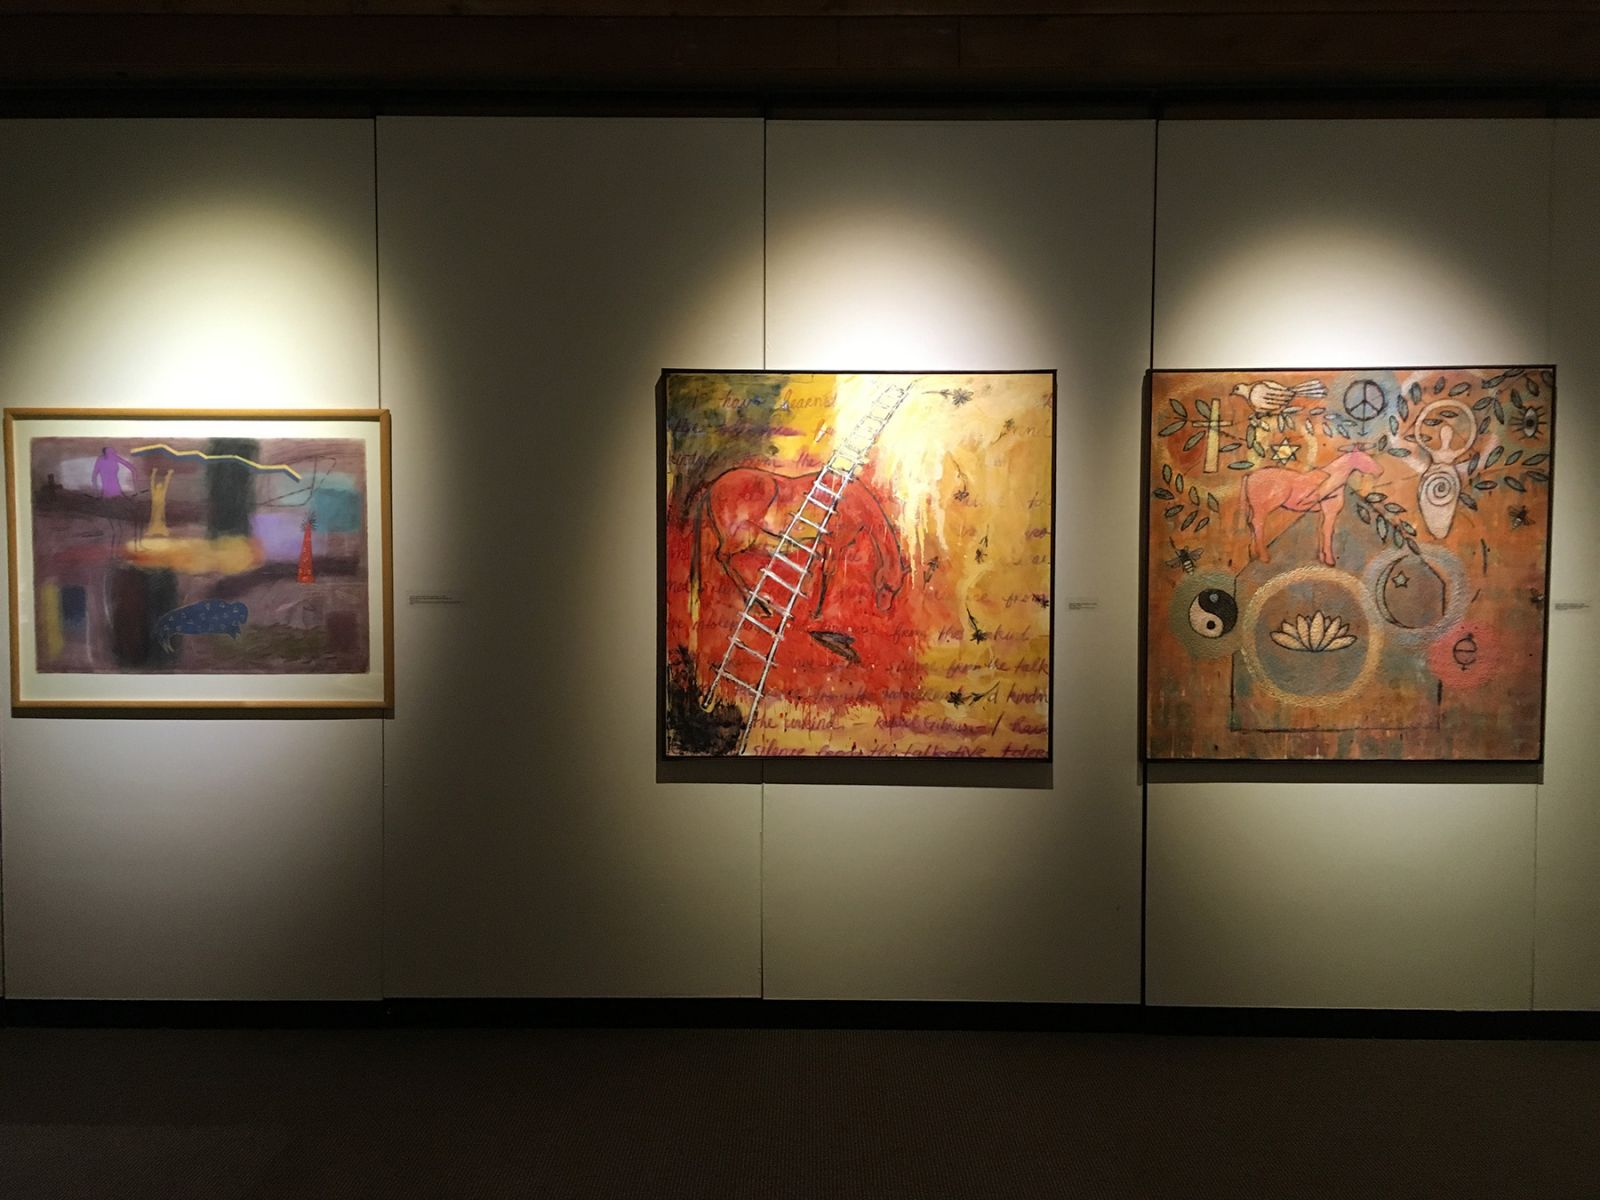 """Red Rise,"" 2016 (microcrystalline wax and oil paint on canvas), center, and ""Maneuvers of the Modern Dance,"" 2016 (beeswax and pigment on baltic birch panel), right, both by Art and Visual Culture Associate Professor Barbara Walton, were inspired by ""Ghost Dancer,"" 1981 (pastel on paper), by Jaune Quick-to-See Smith."